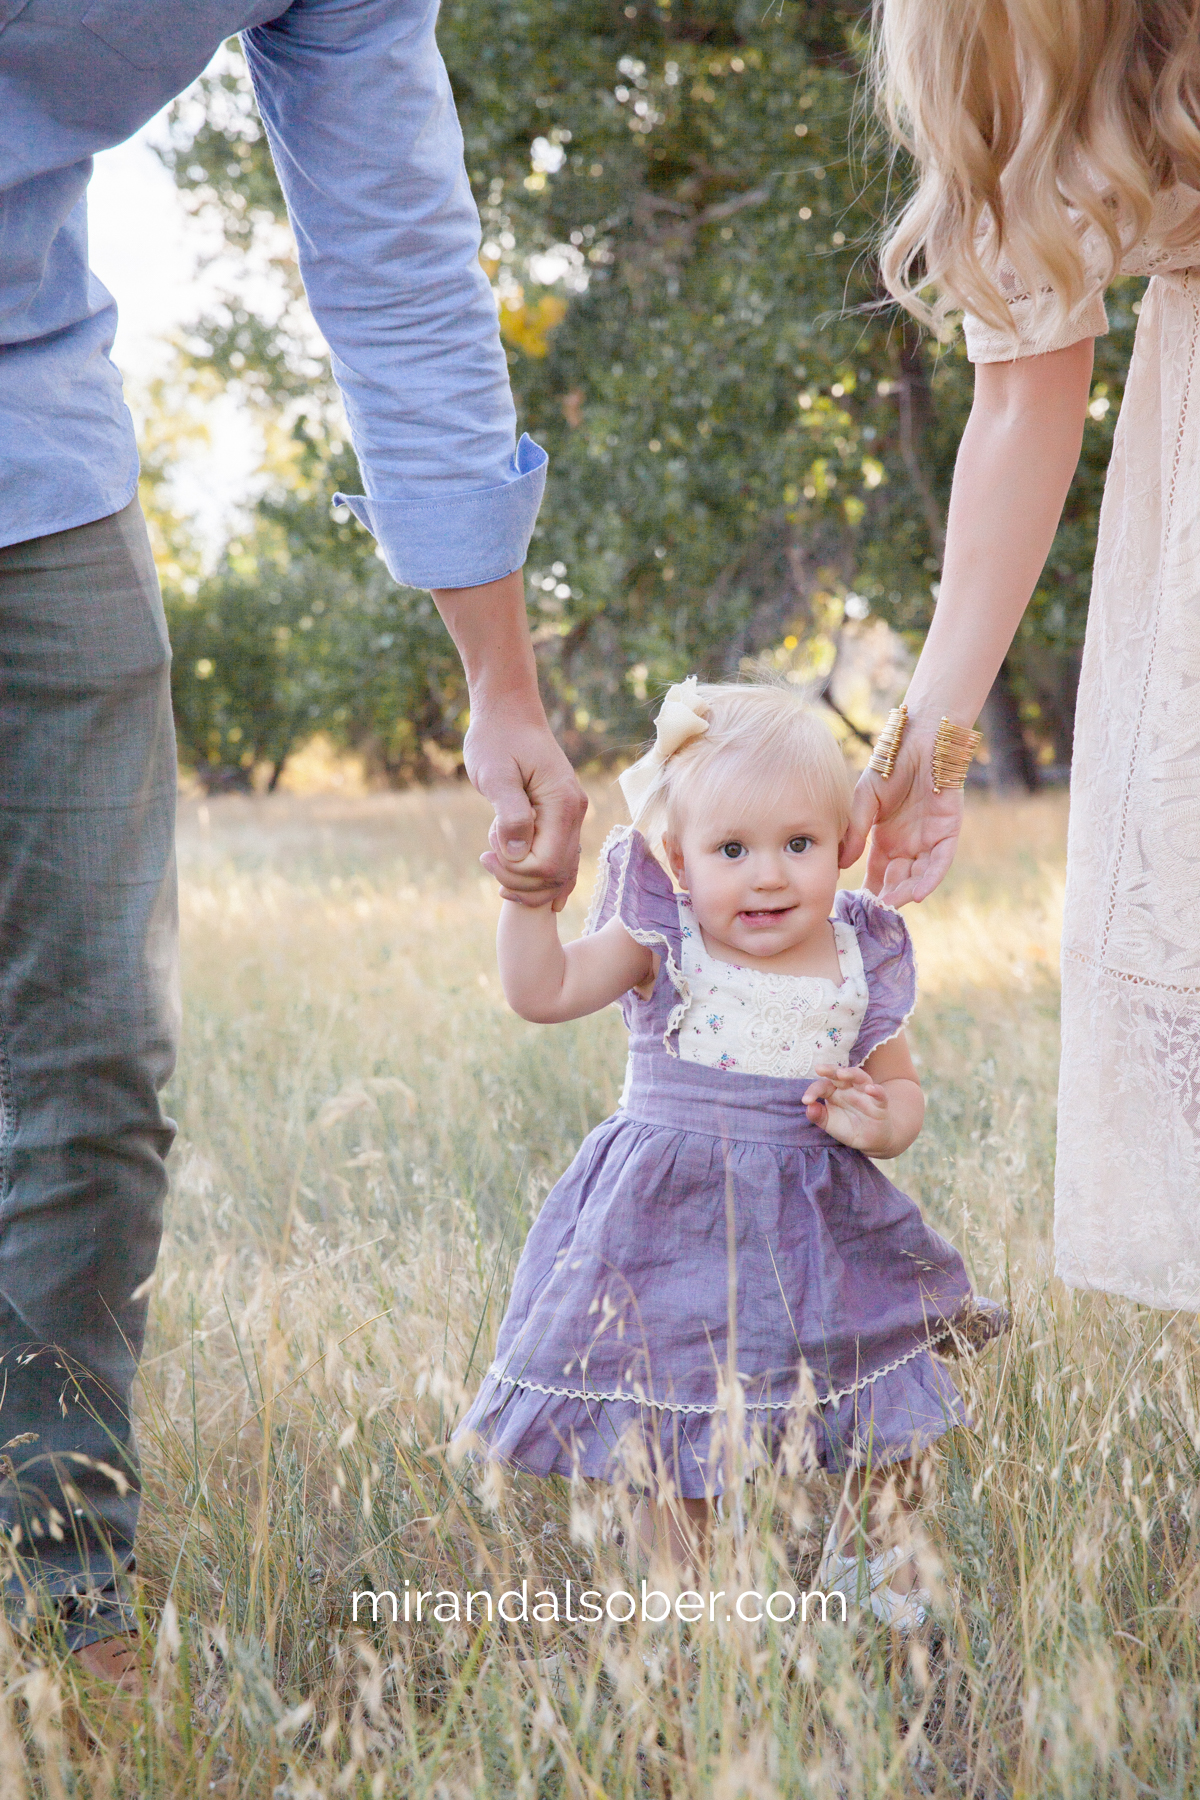 Best Denver Family Photographers, Miranda L. Sober Photography